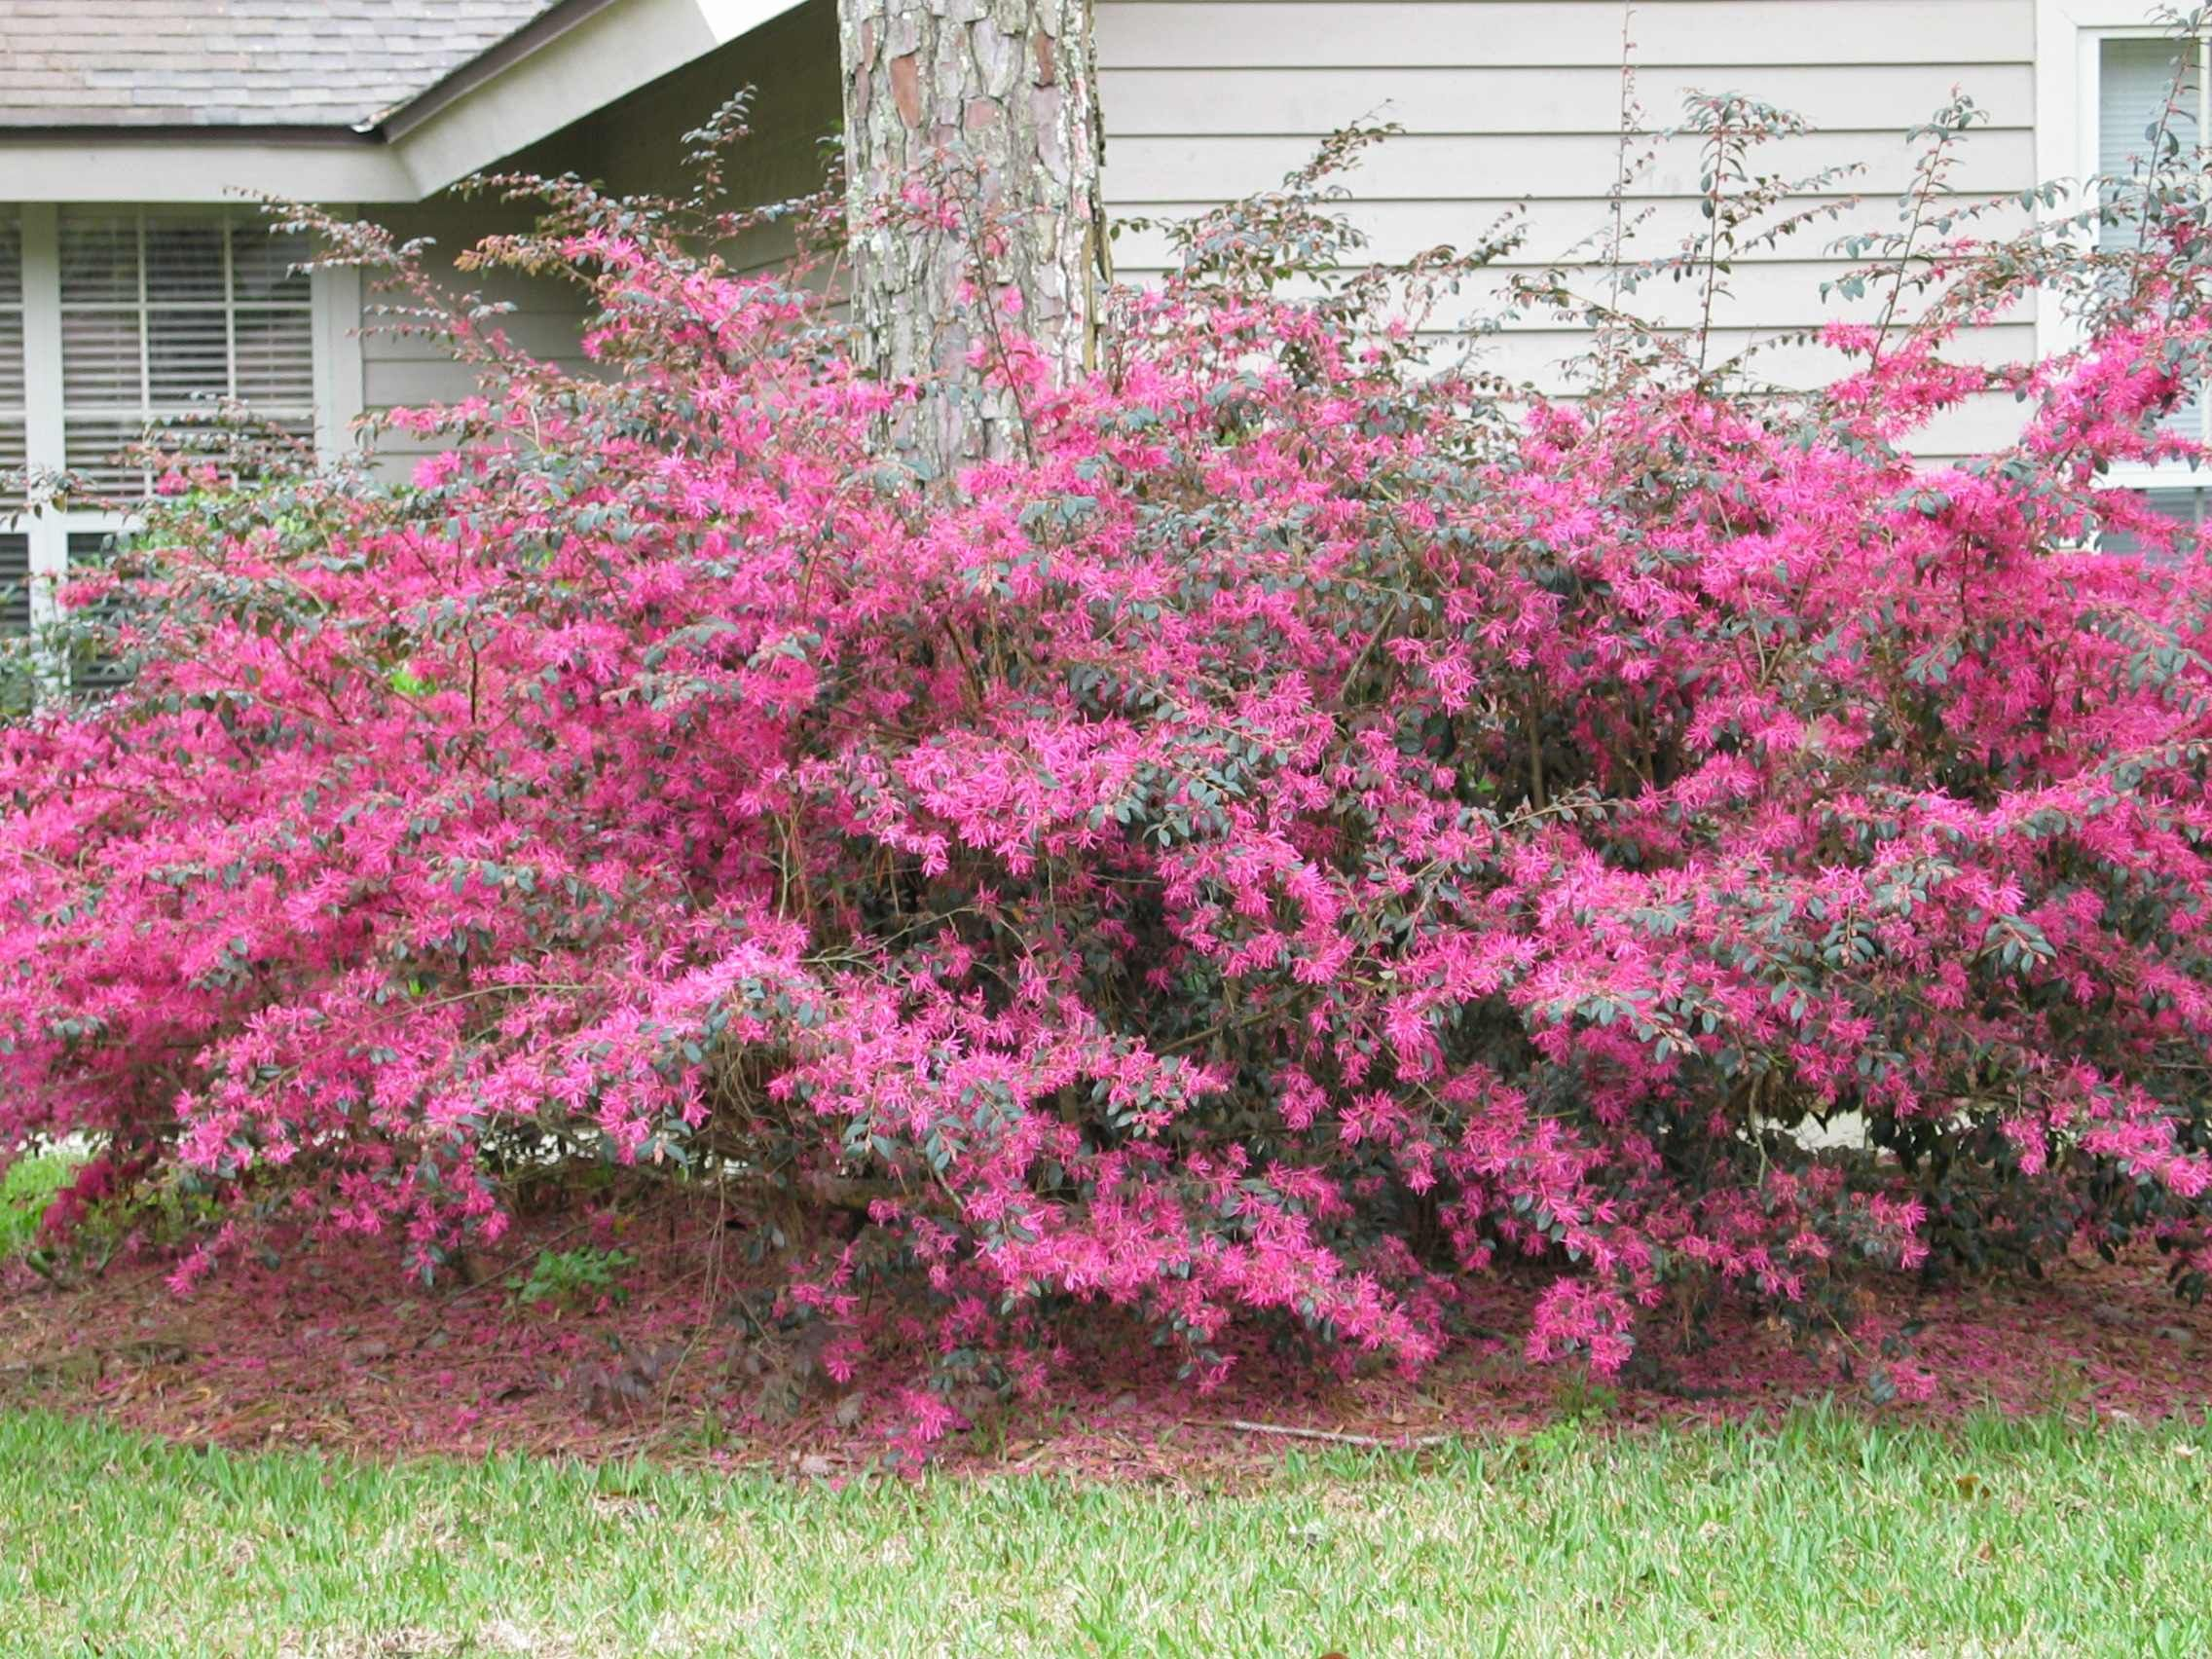 Loropetalum or chinese fringe flower my favorite landscaping loropetalum or chinese fringe flower landscaping shrub has lovely pink flowers in spring and gorgeous green and red and purple foliage all at the same dhlflorist Choice Image